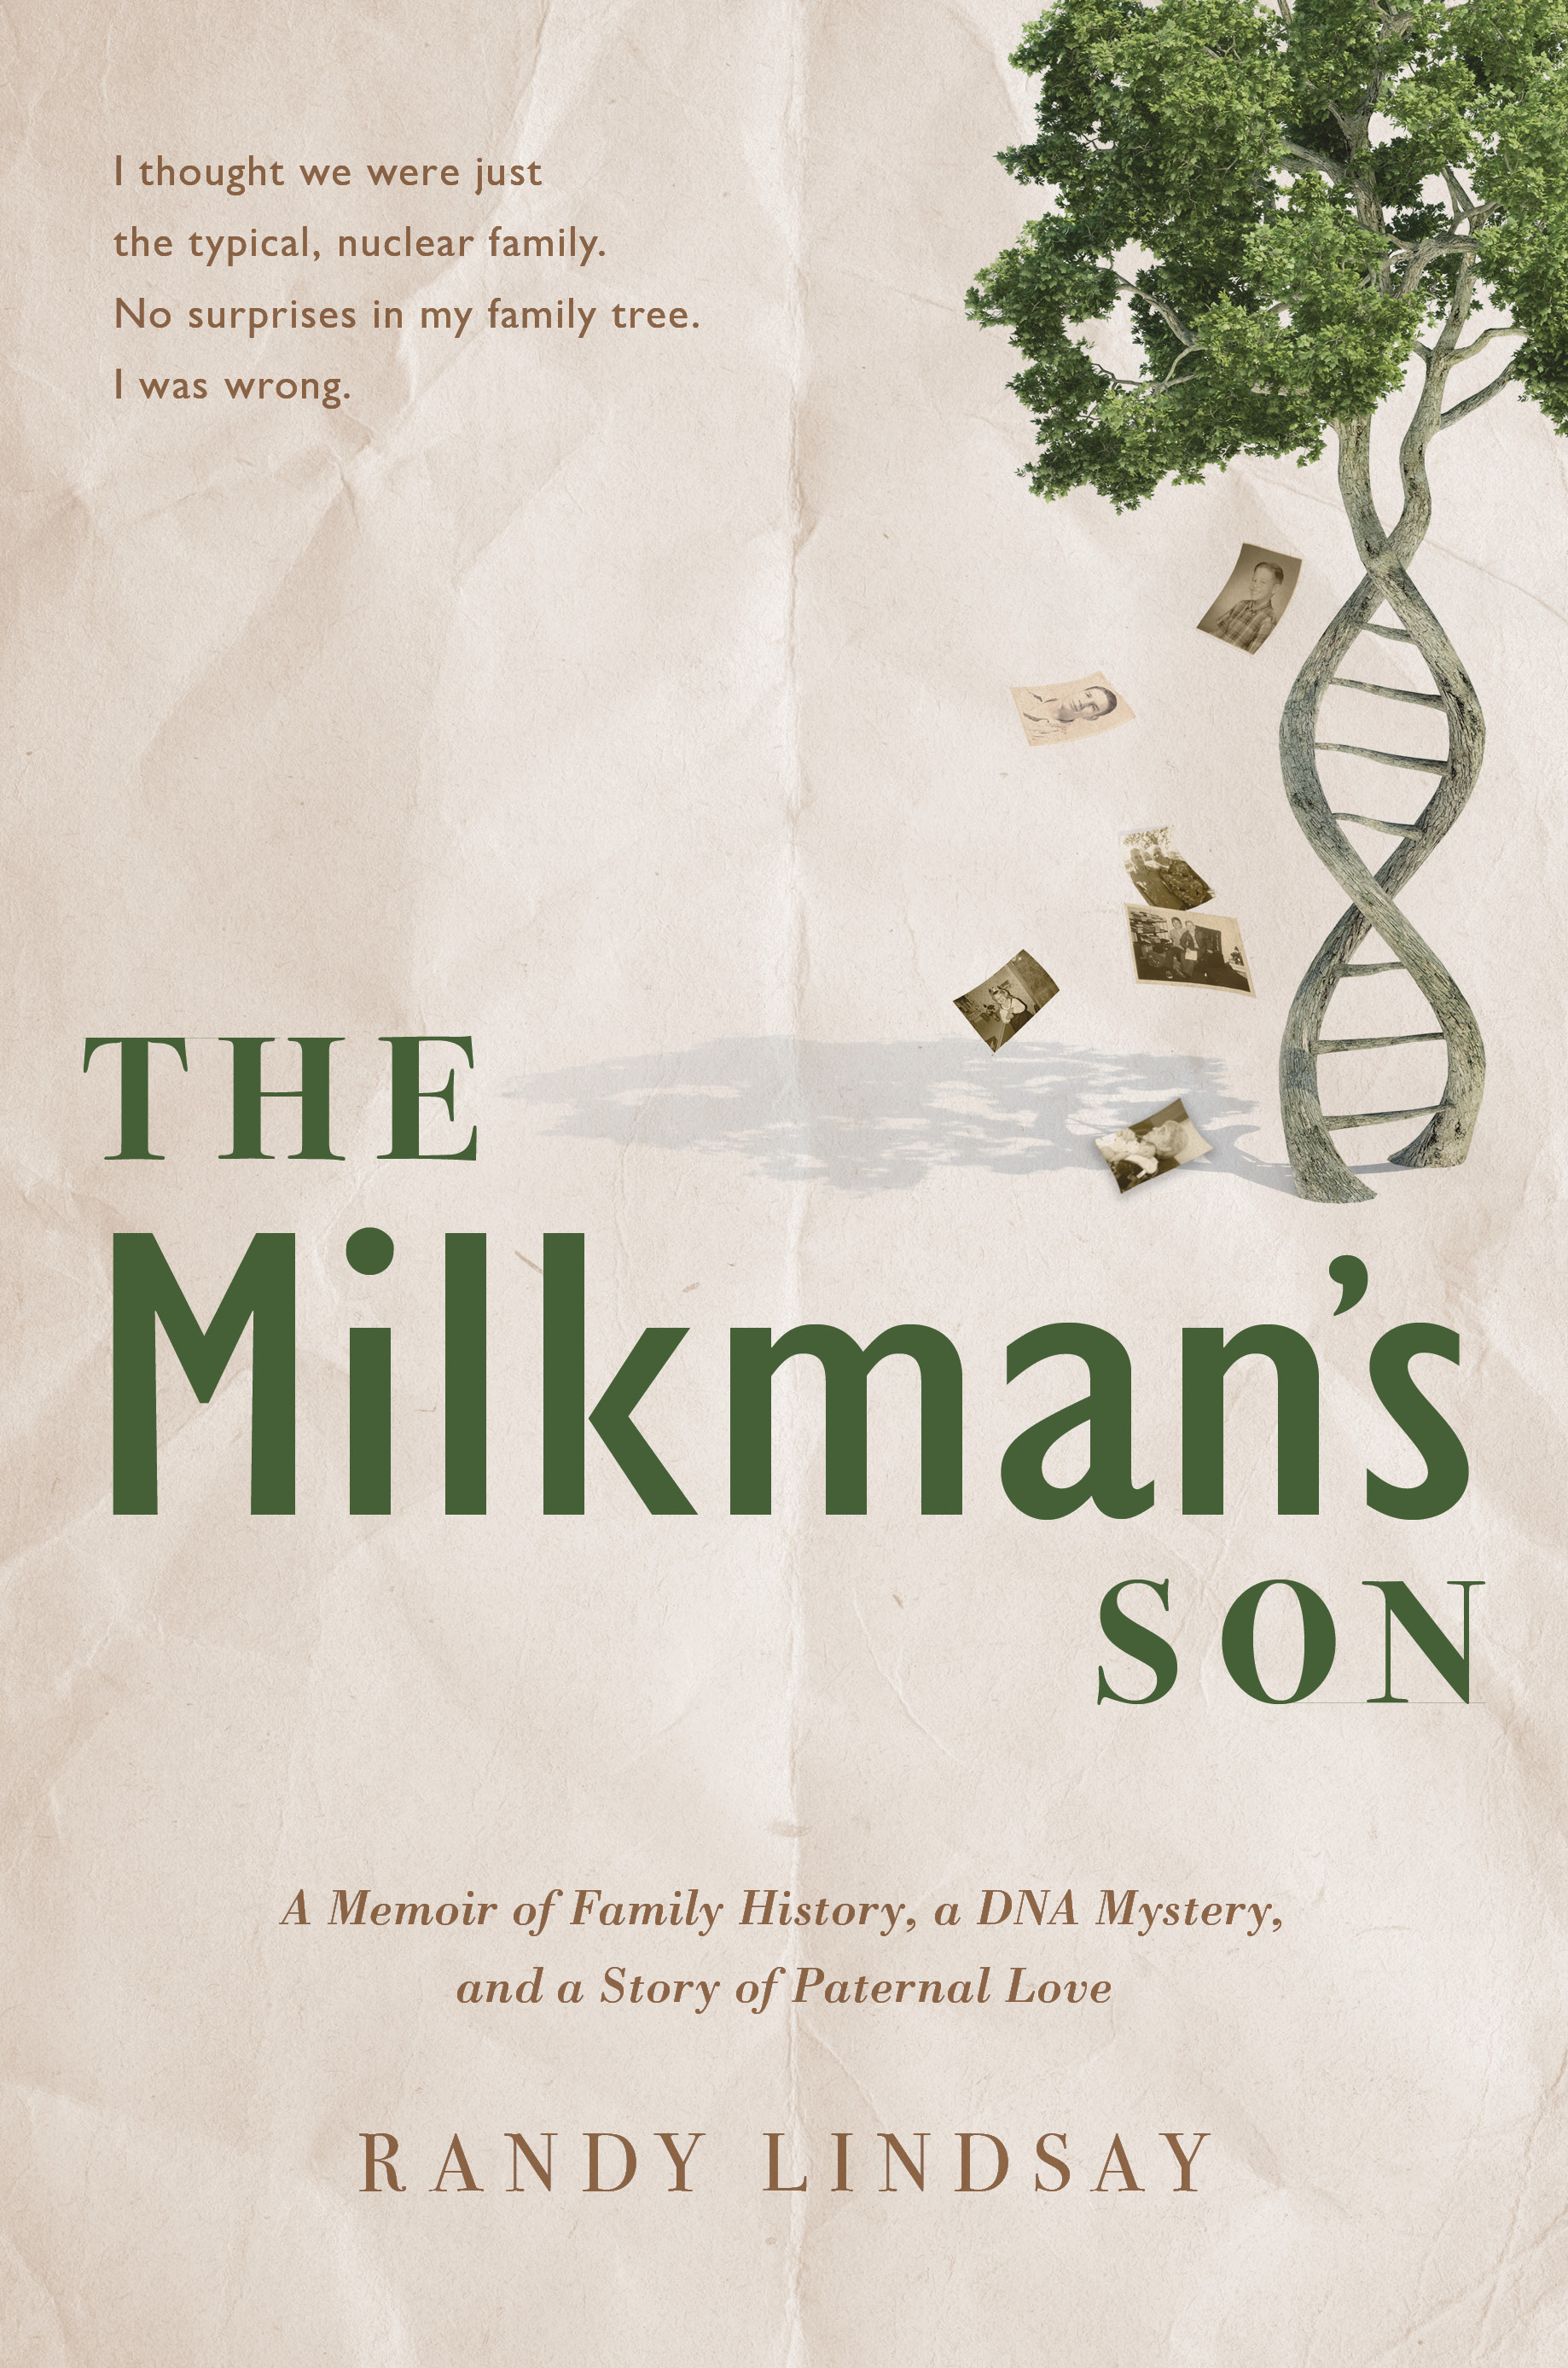 The Milkman's Son: A Memoir of Family History, a DNA Mystery, and a Story of Paternal Love